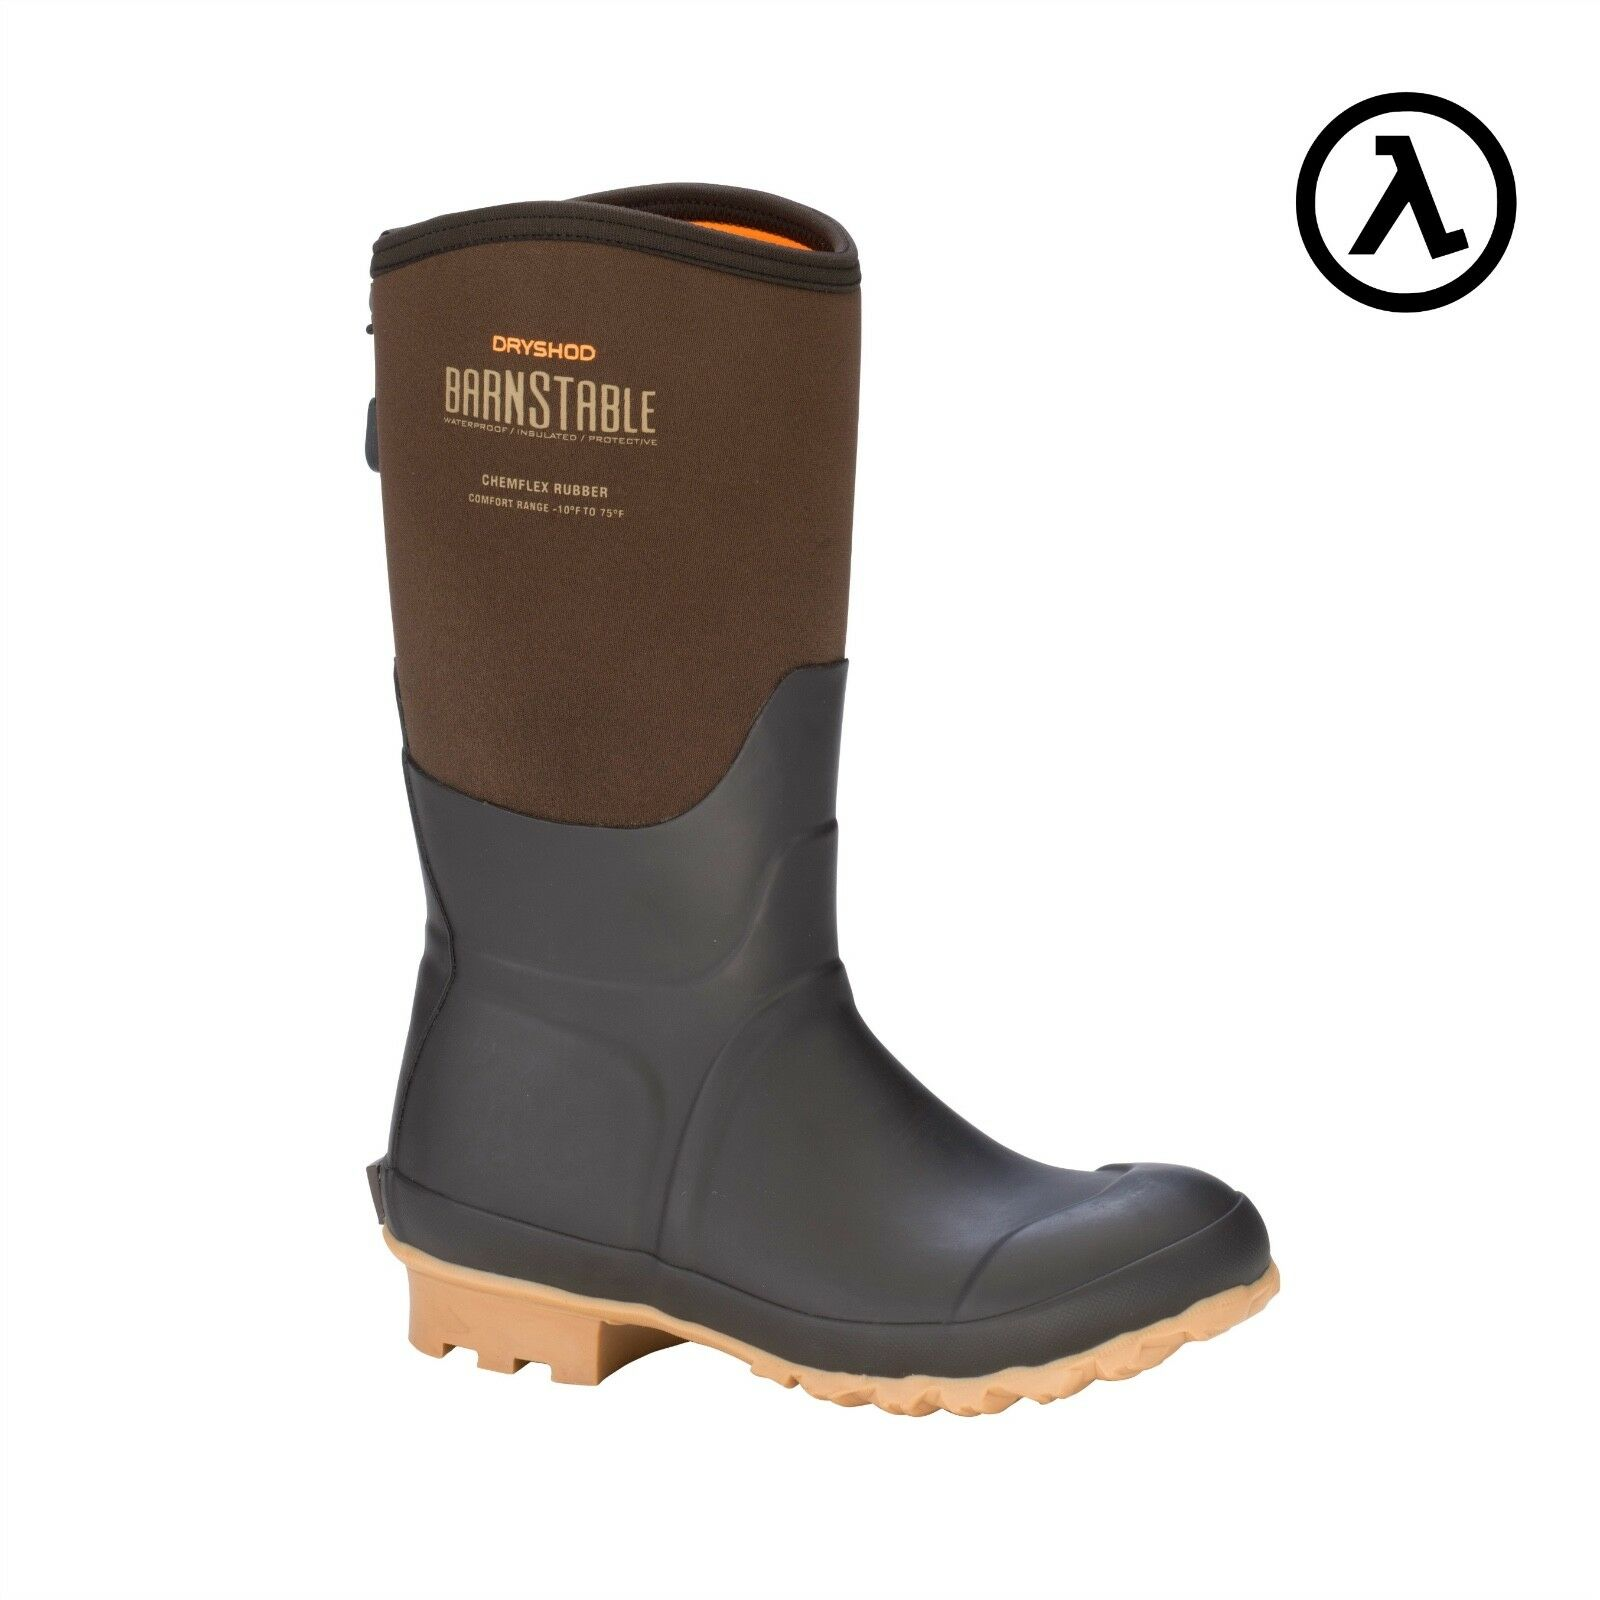 DRYSHOD BARNSTABLE WOMEN'S ALL-CONDITIONS FARM MID SIZES Stiefel BSB-WM-BR - ALL SIZES MID a80372